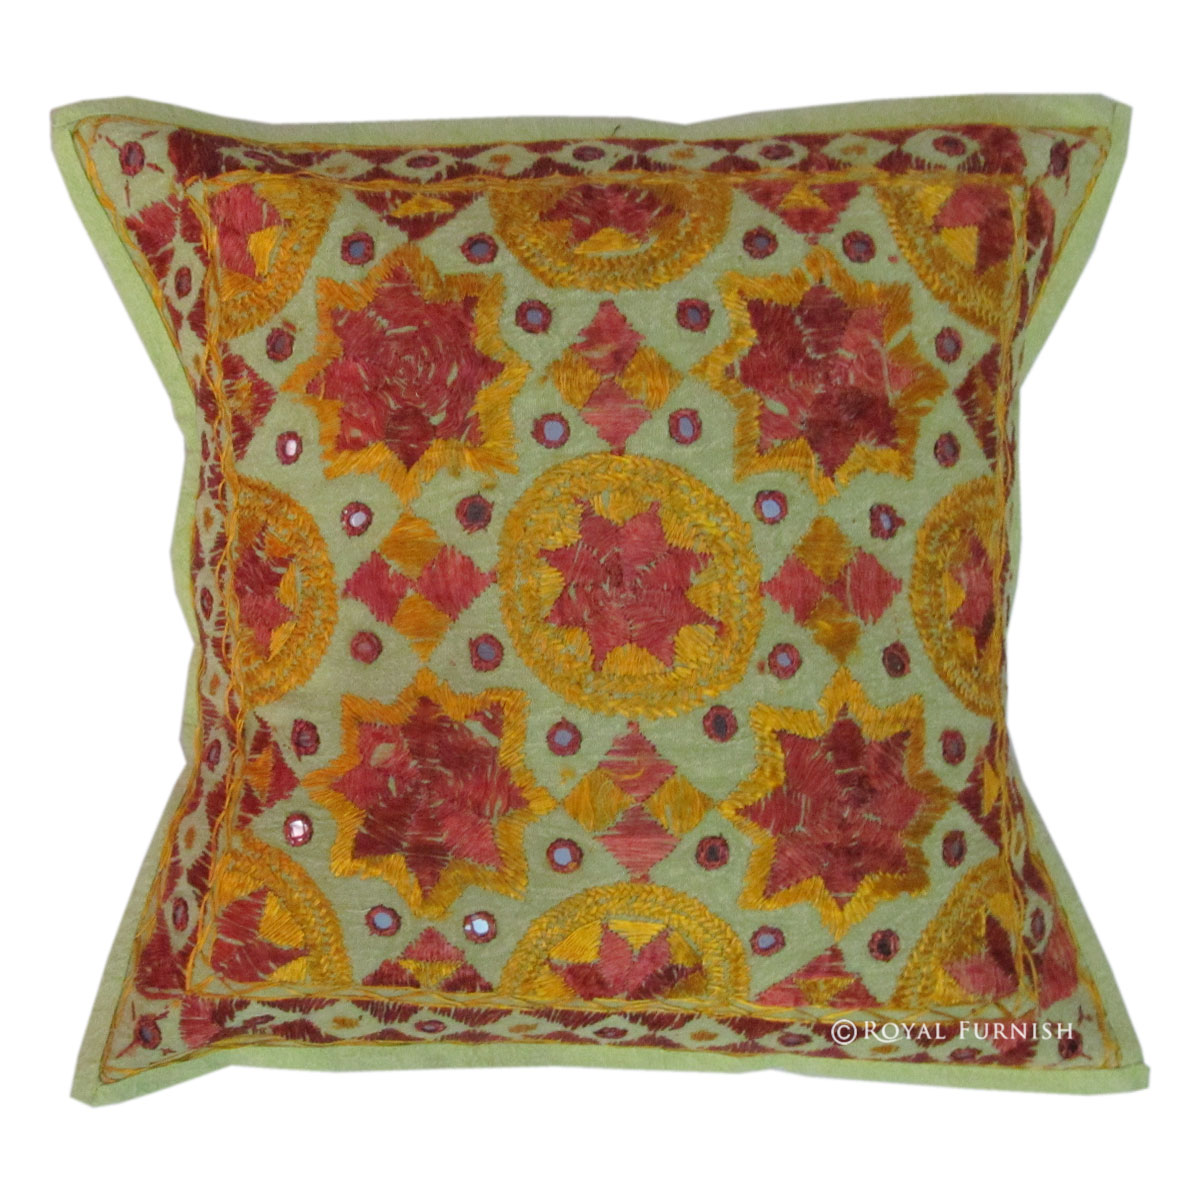 Vintage Handmade Embroidery Star Mirror Decorative Throw Toss Pillow eBay